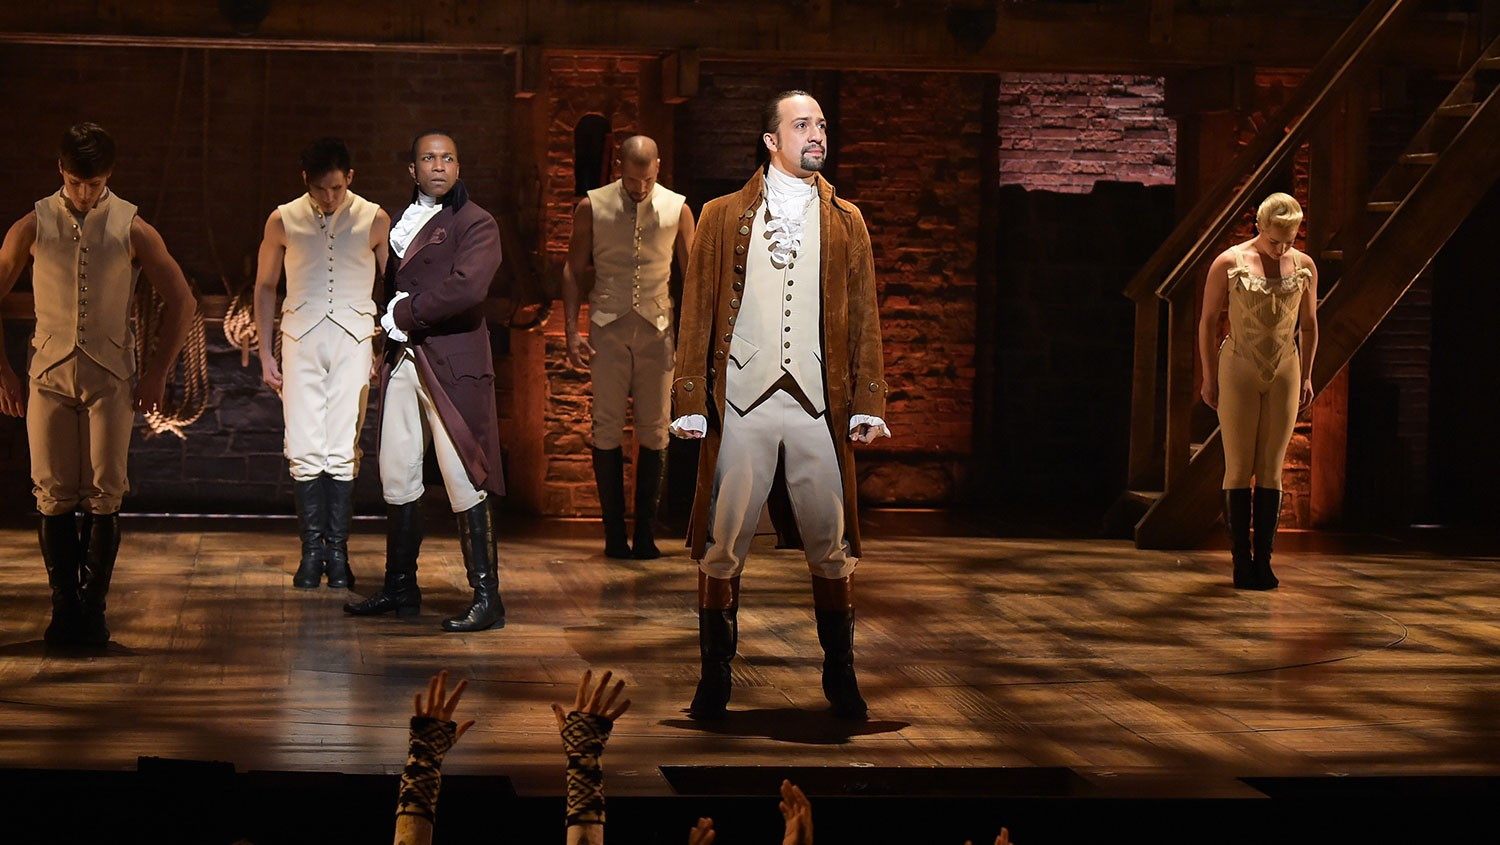 """Leslie Odom, Jr. and Lin-Manuel Miranda perform on stage during """"Hamilton"""" GRAMMY performance at Richard Rodgers Theater on Feb. 15, 2016 in New York City."""